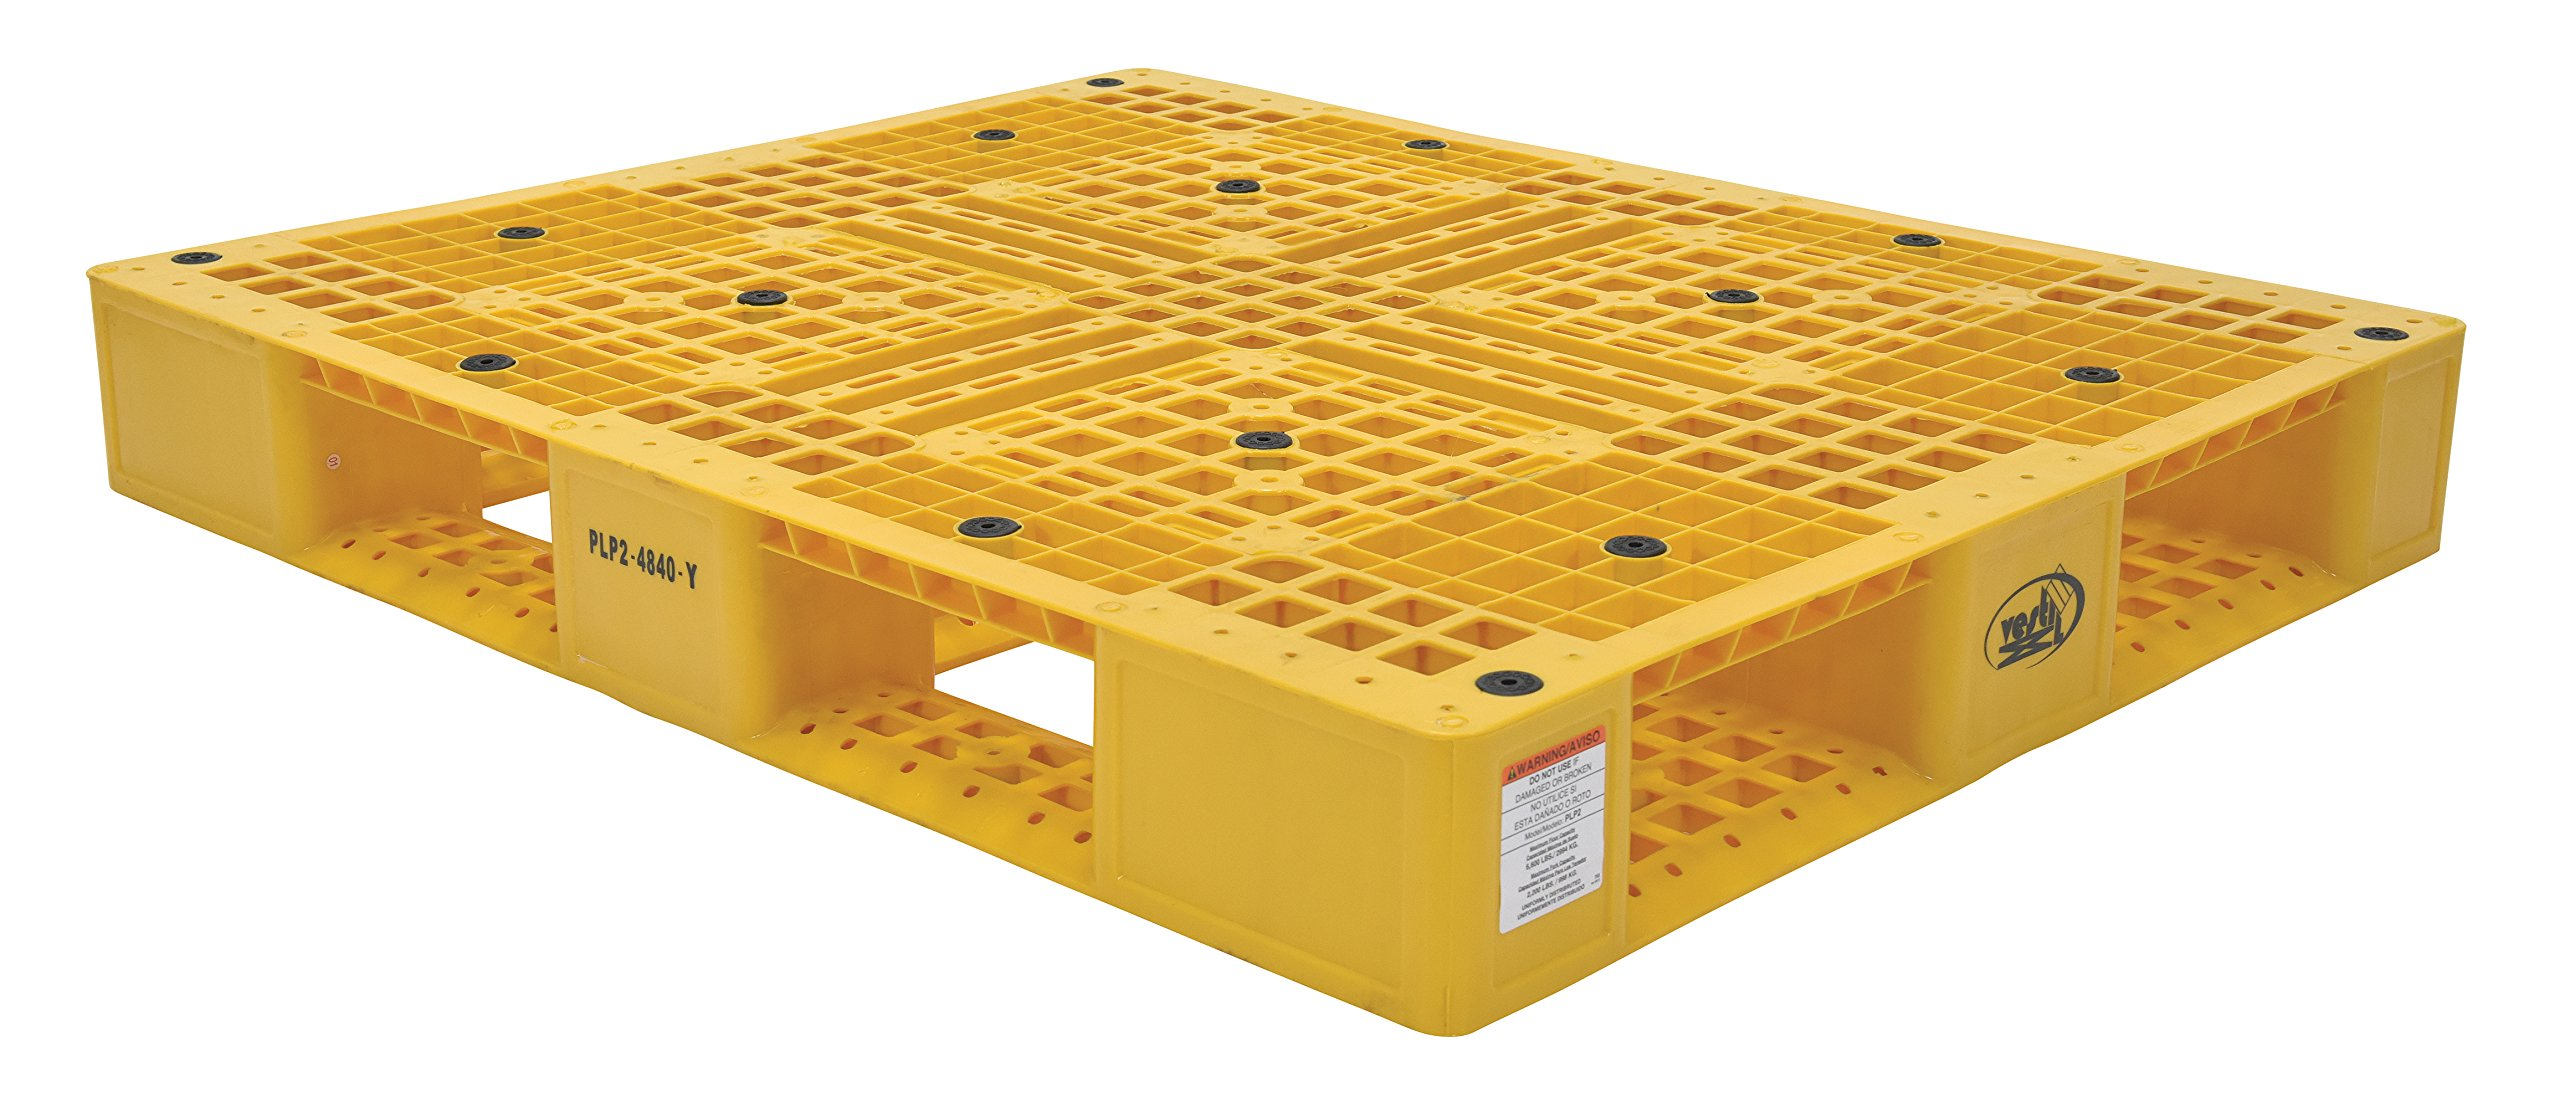 Vestil PLP2-4840-YELLOW Yellow Polyethylene Pallet with 4 Way Entry, 6600 lbs Capacity, 39.5'' Length, 47.375'' Width, 6'' Height by Vestil